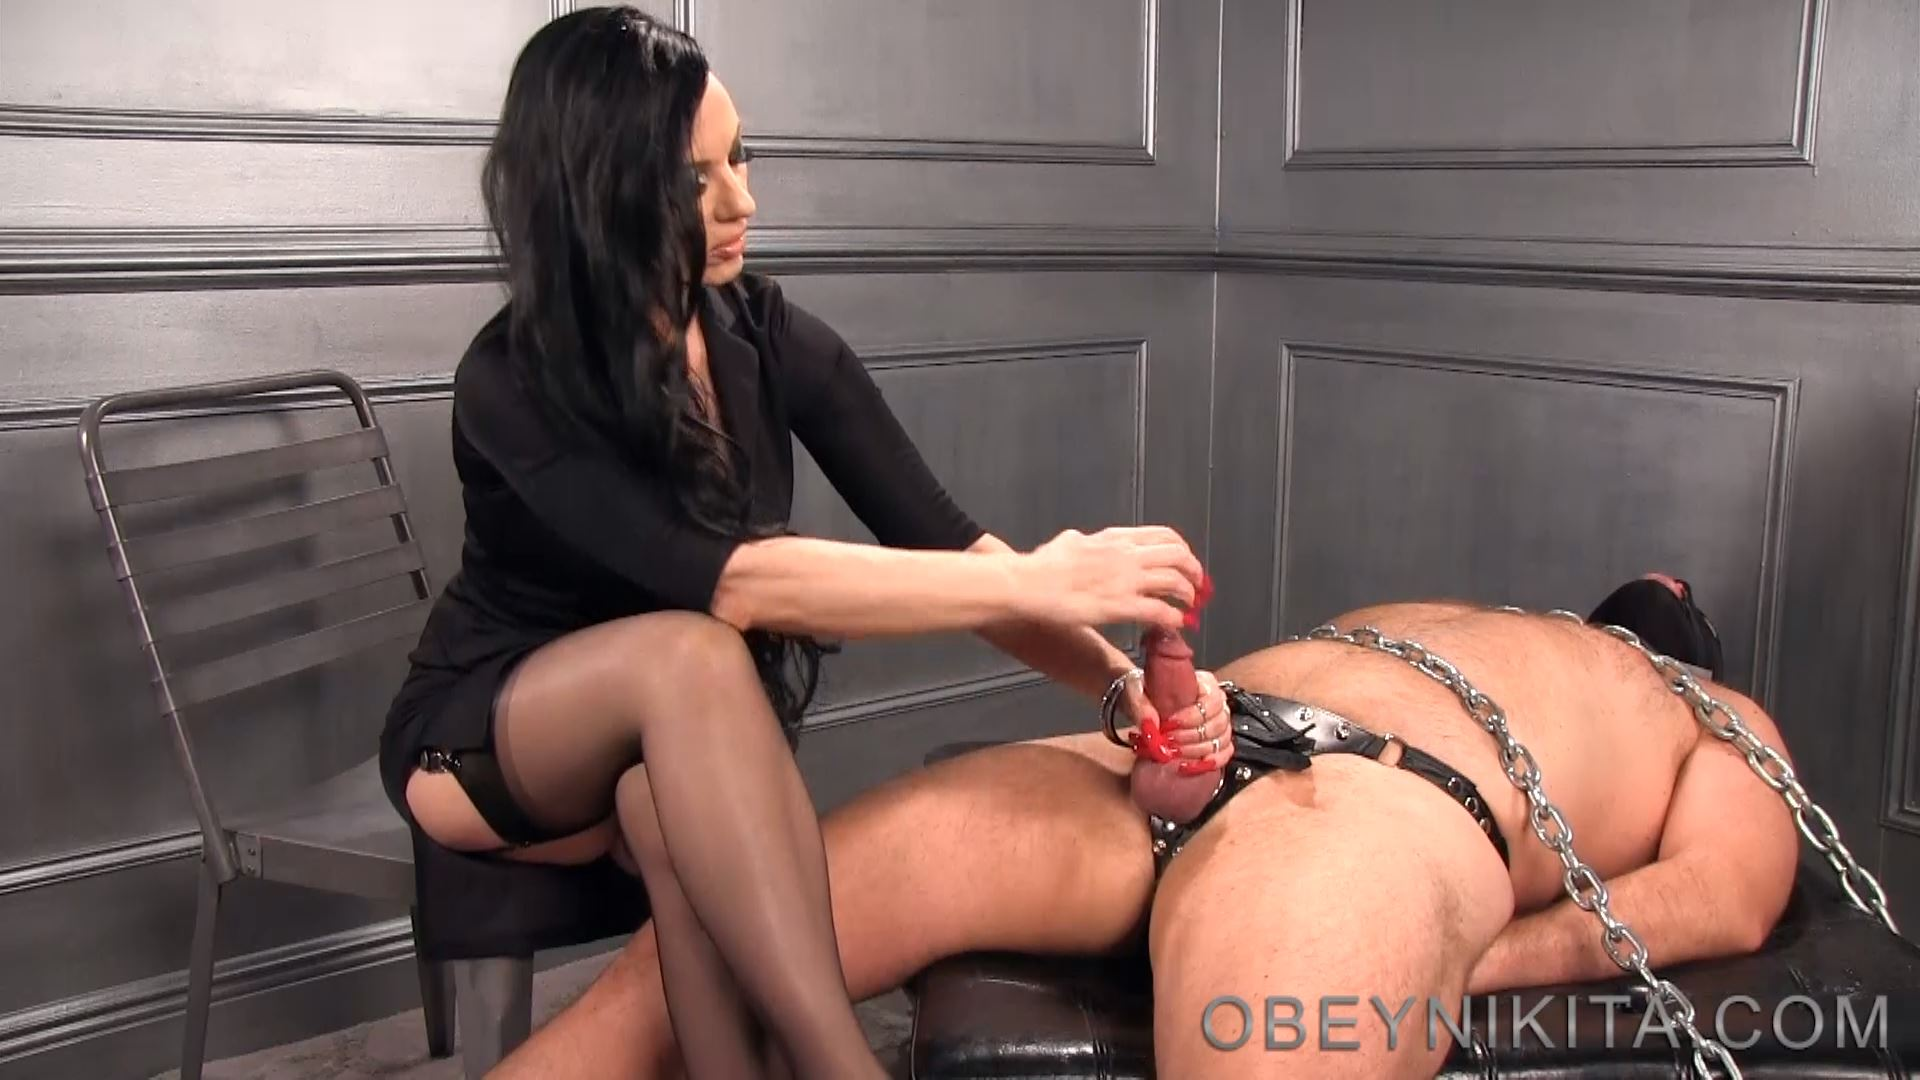 Mistress Nikita In Scene: Bound For My Nails - OBEYNIKITA - FULL HD/1080p/MP4